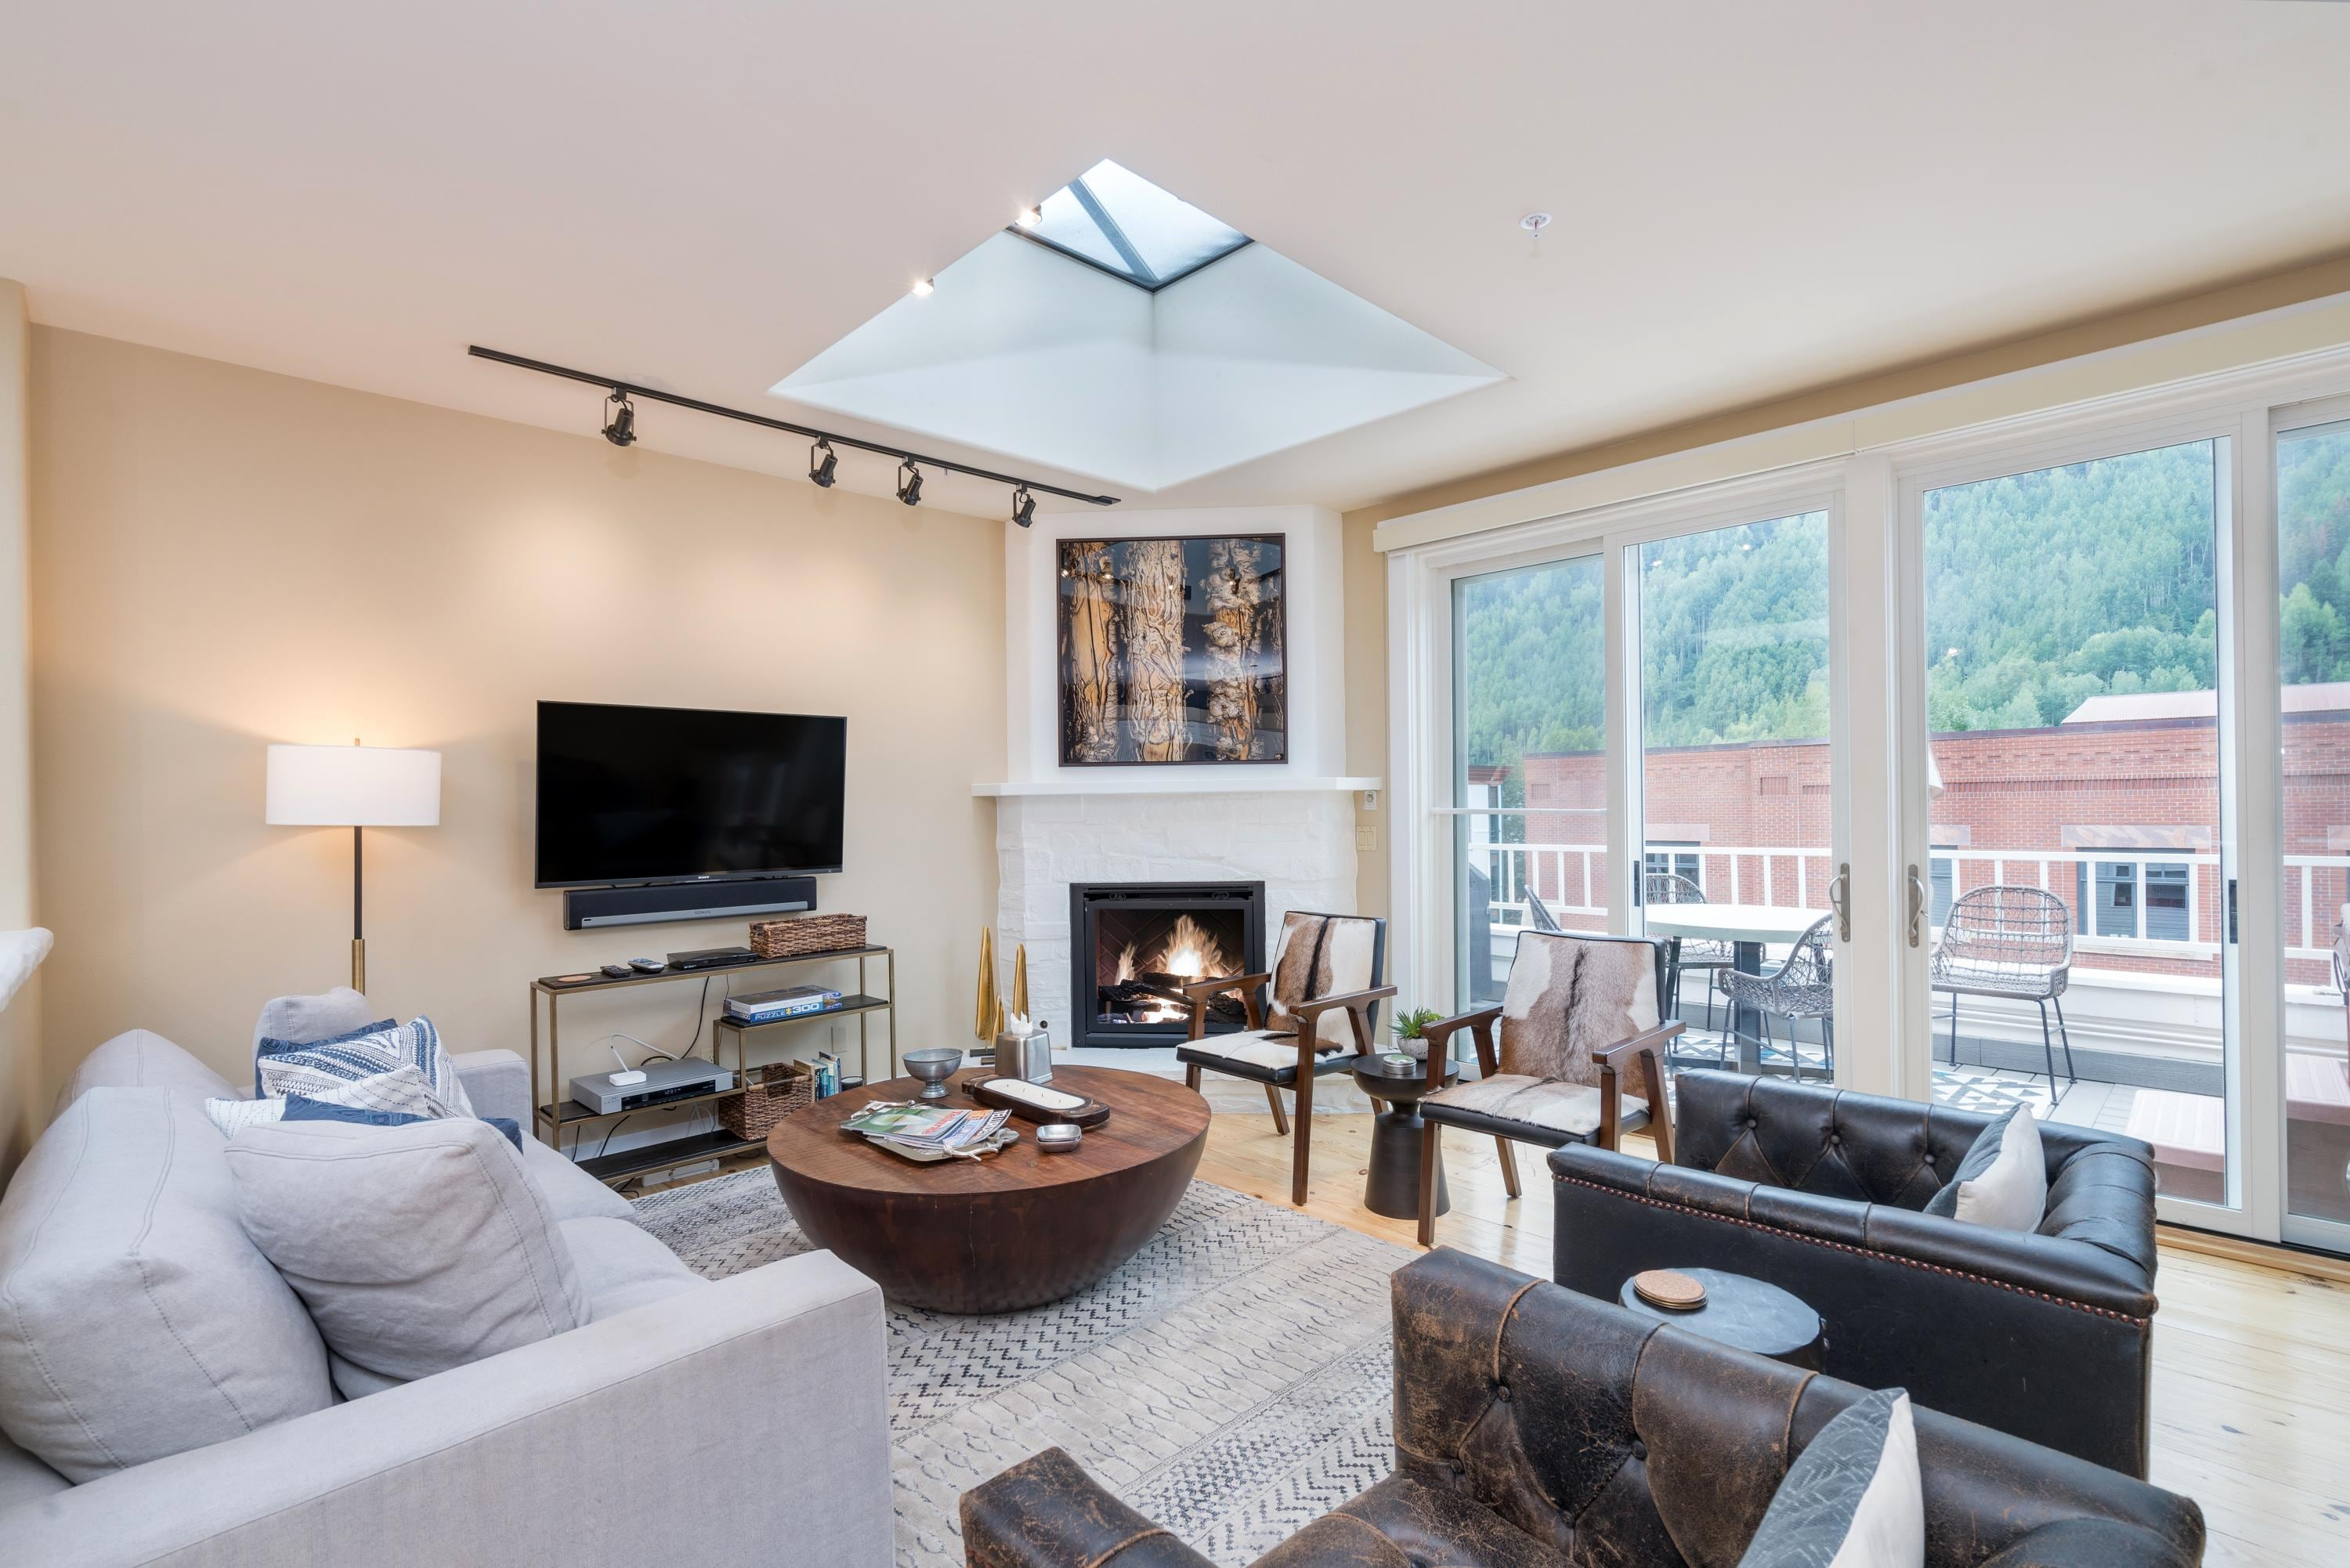 Property Image 1 - Impeccably Decorated Condo with Private Hot Tub and Views